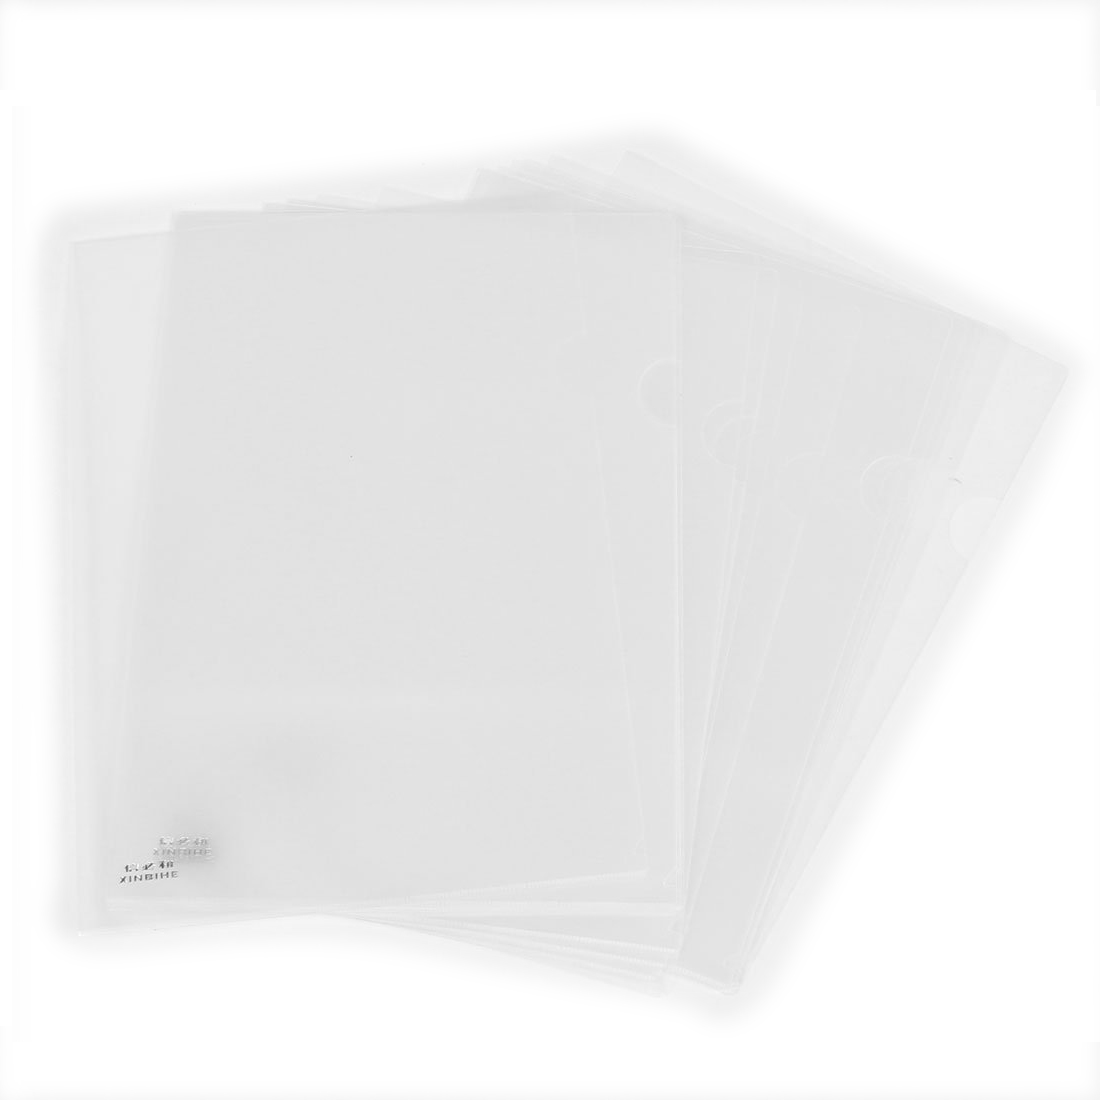 SOSW-Reuseable Clear File Folder Holder For A4 Paper Document 20 Pcs